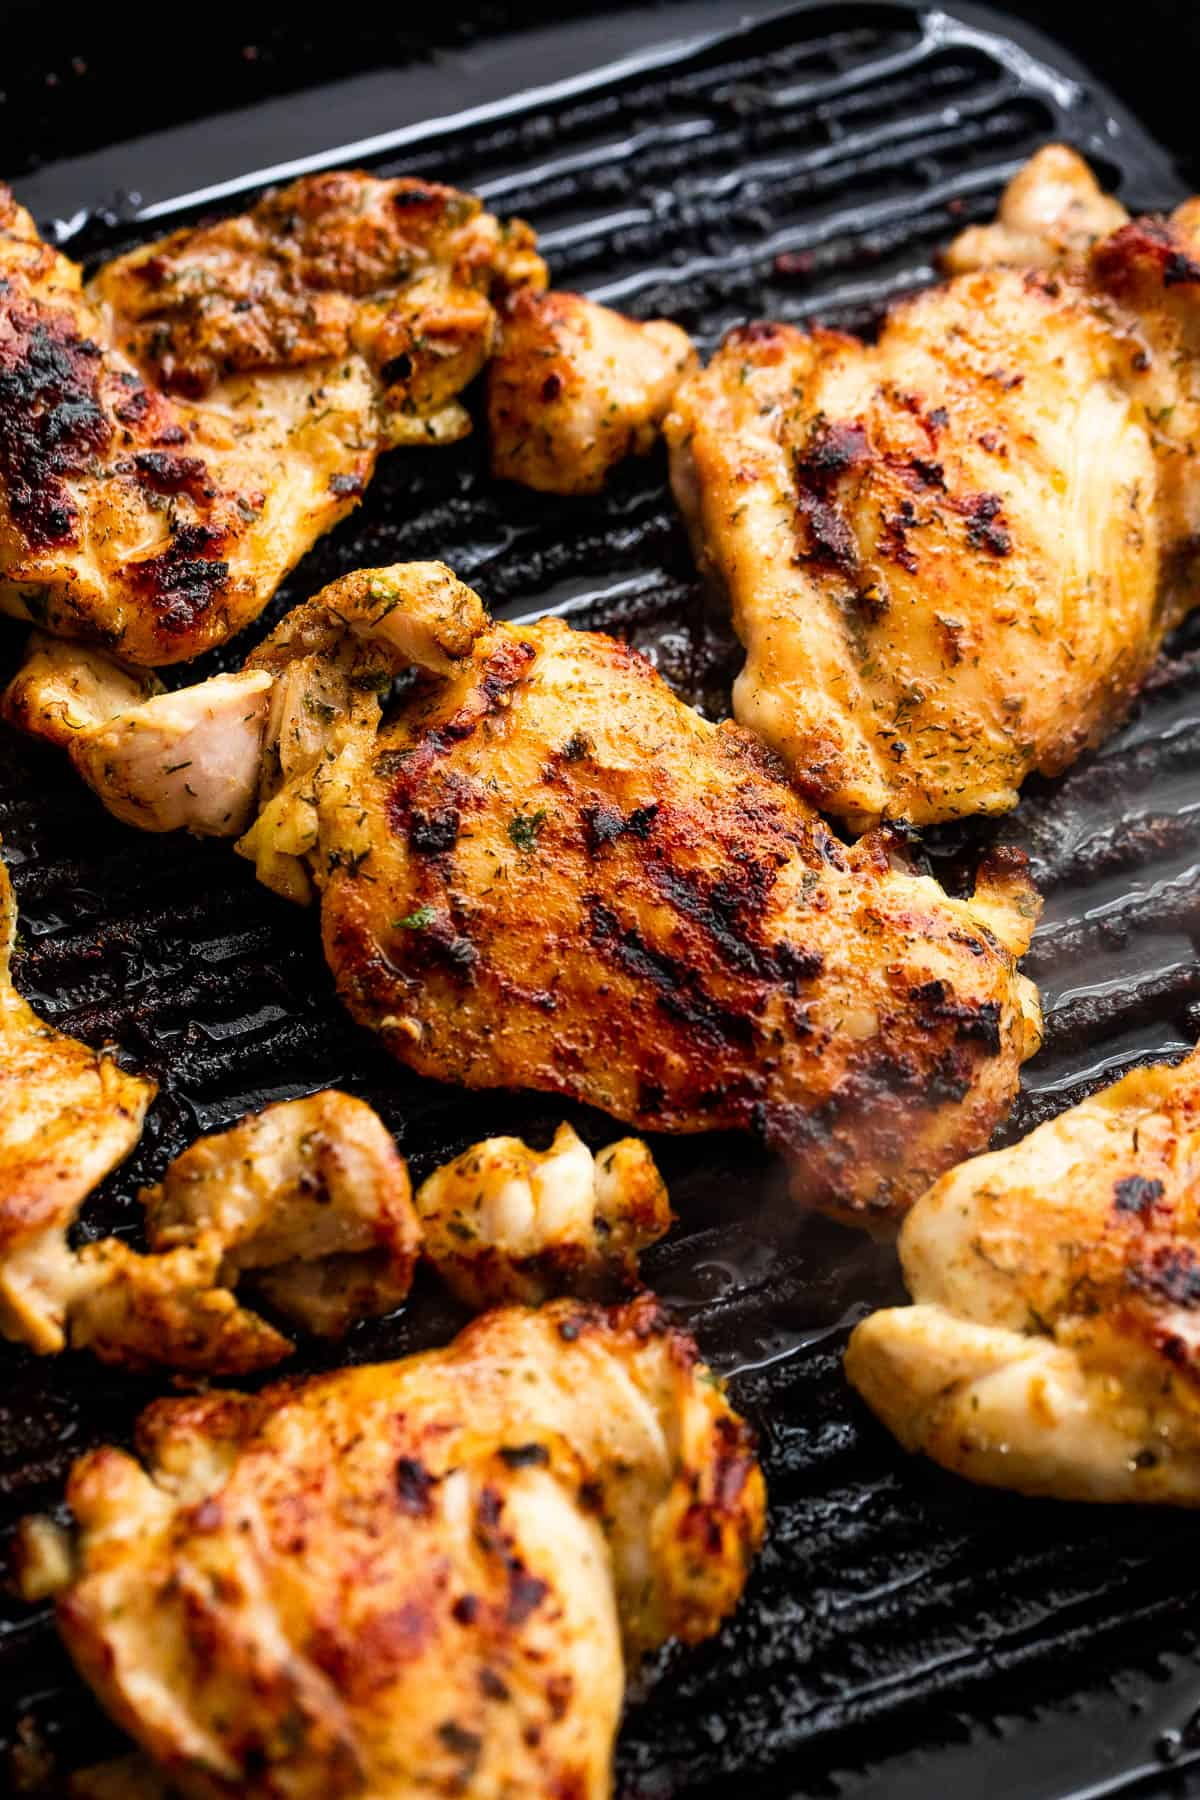 grilling chicken thighs on a grill pan